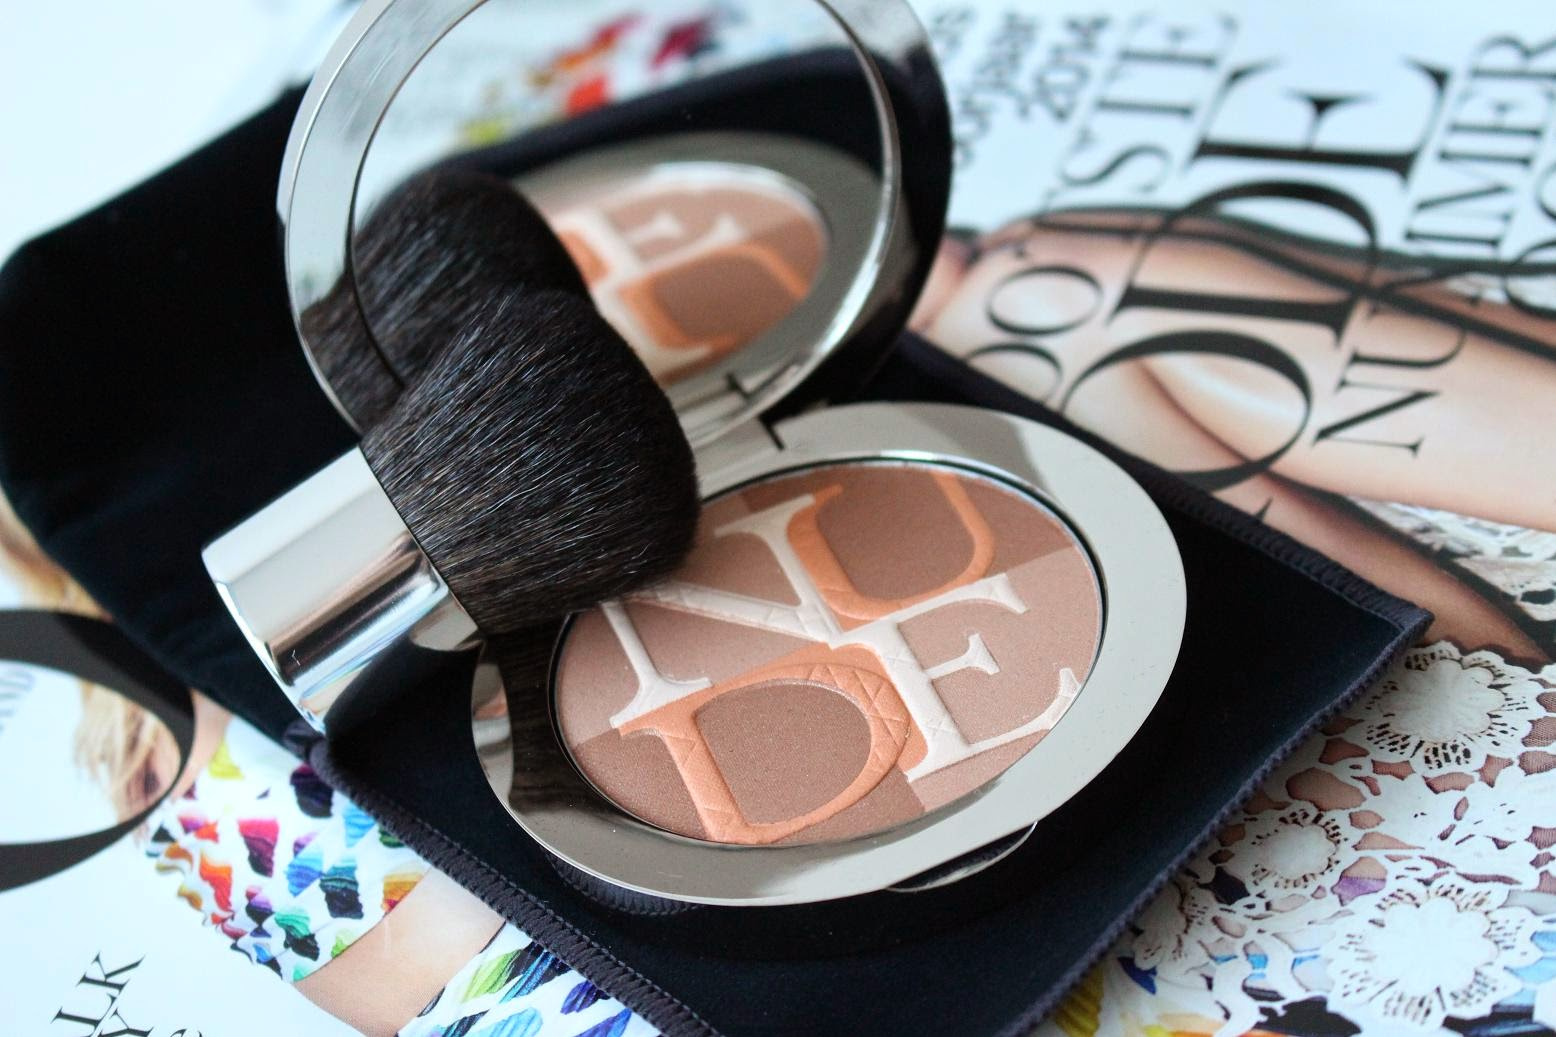 Diorskin Nude Shimmer Instant Illuminating Powder 002 Amber